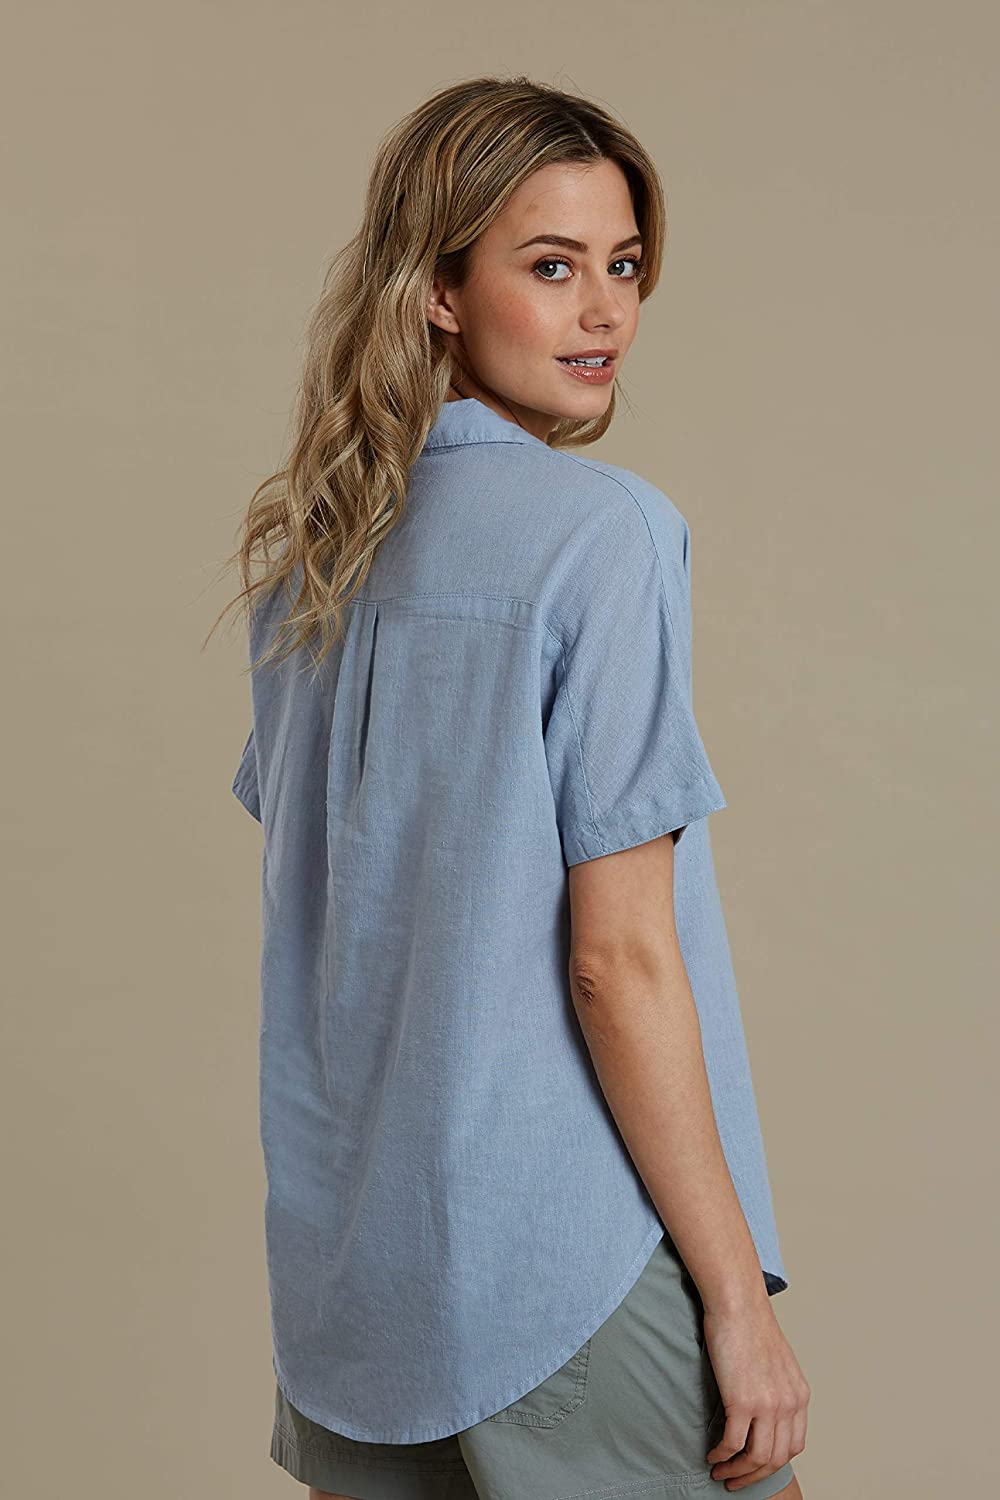 Relaxed Fit Breathable Tee Shirt Mountain Warehouse Breeze Womens Linen Shirt Hiking /& Camping Best for Travelling Lightweight Ladies Top Outdoors